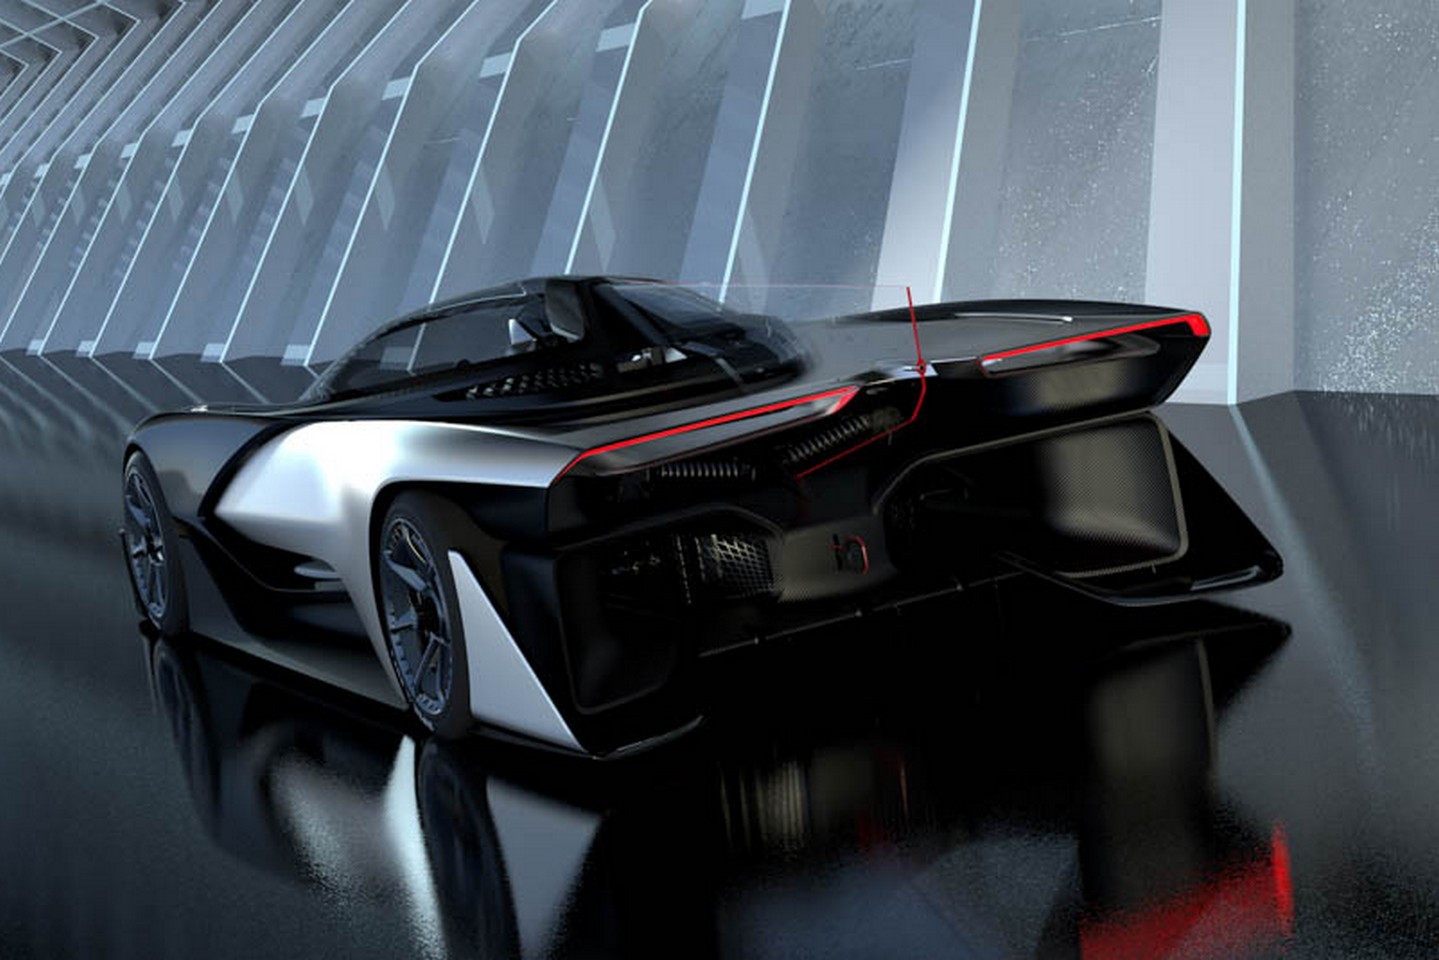 ������ ������� ���������������� Faraday Future FFZero1